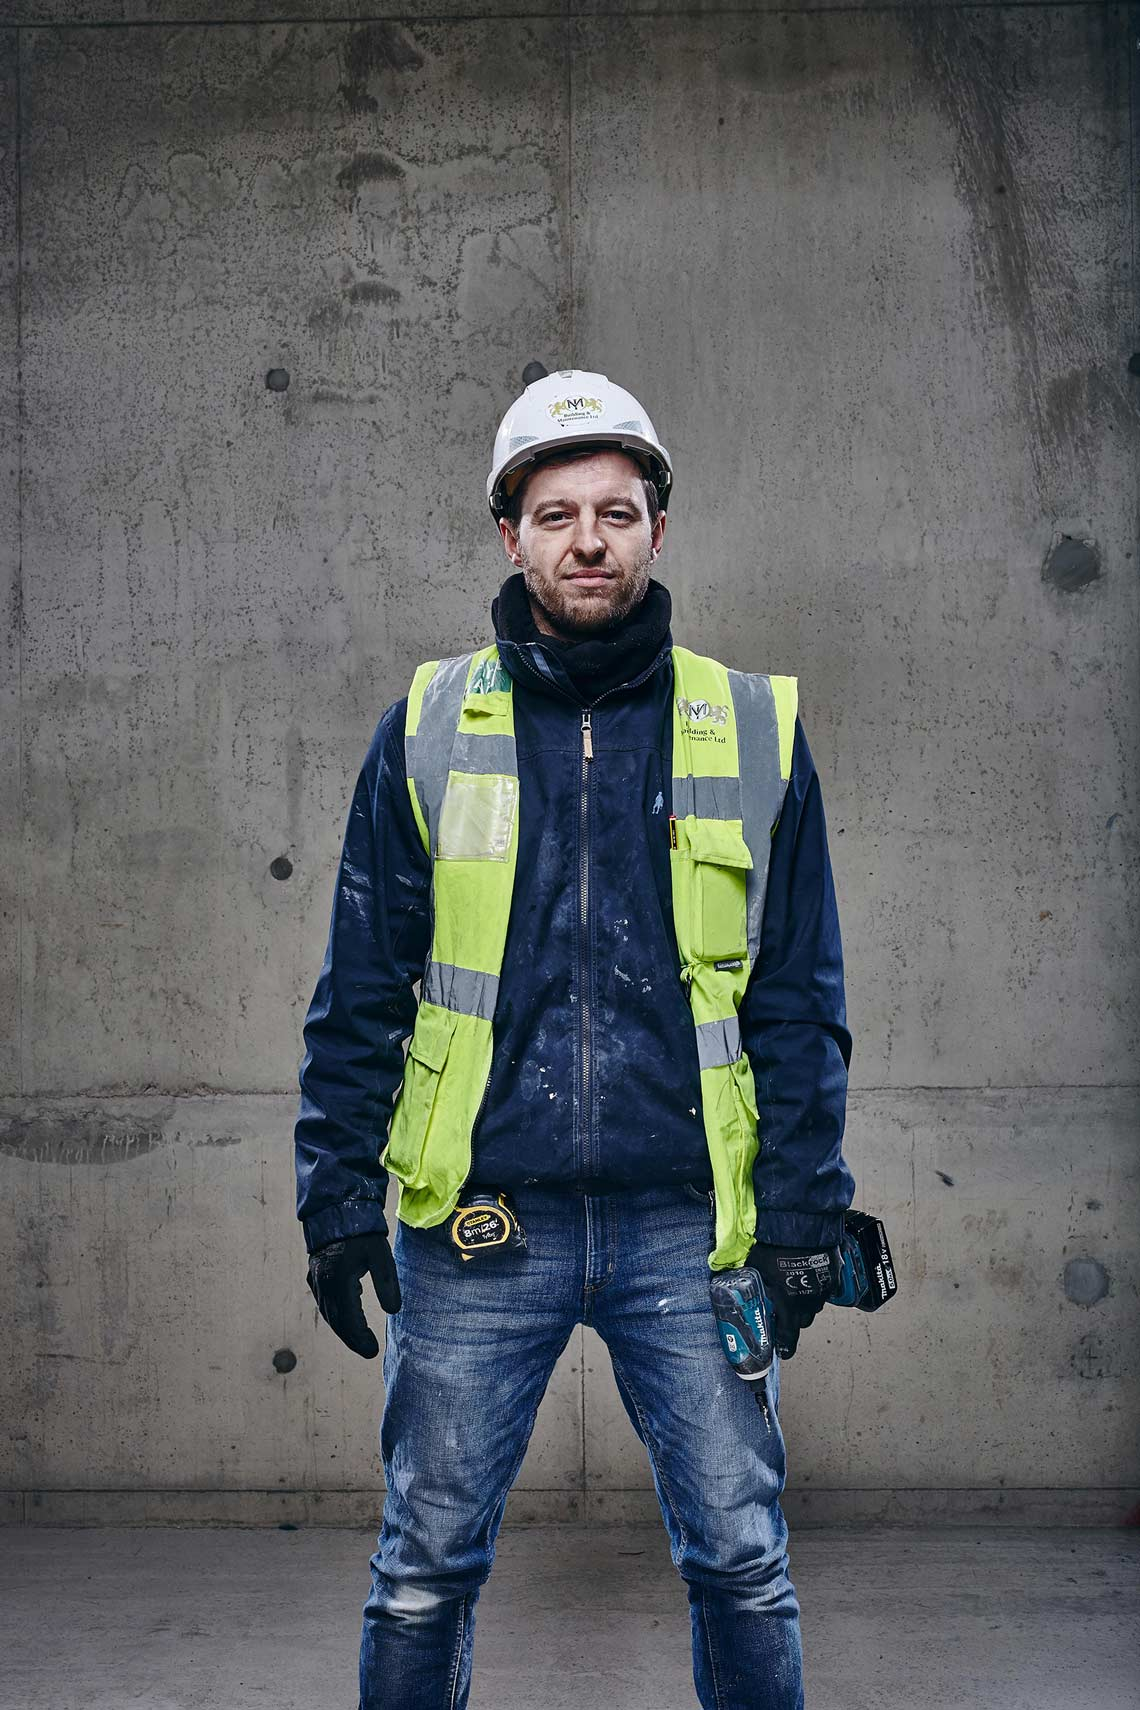 Building Site Construction Worker